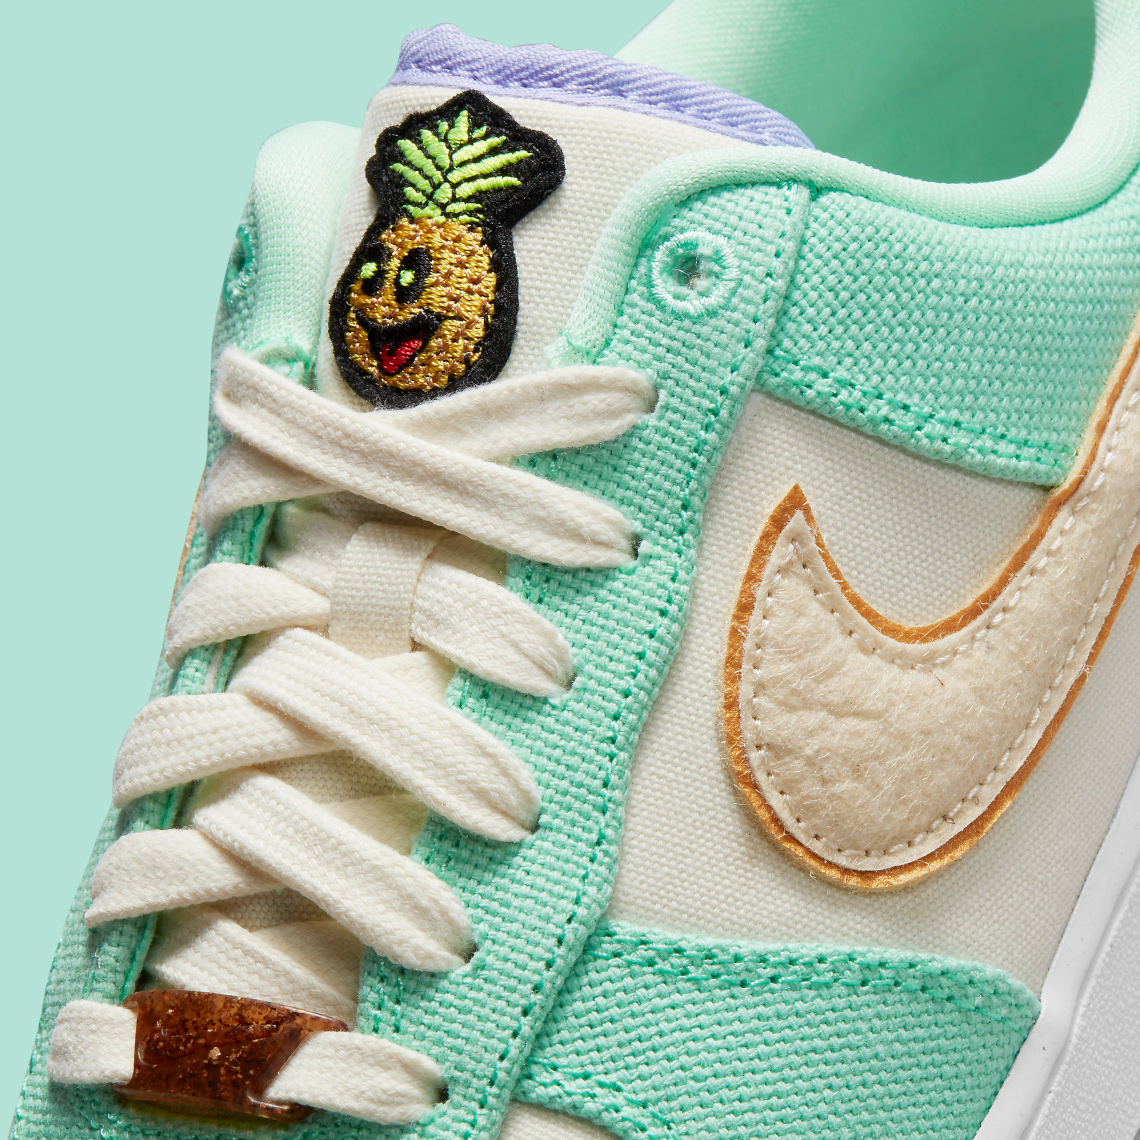 Nike's Iconic Air Force Ones Get a Vegan Pineapple Leather ...